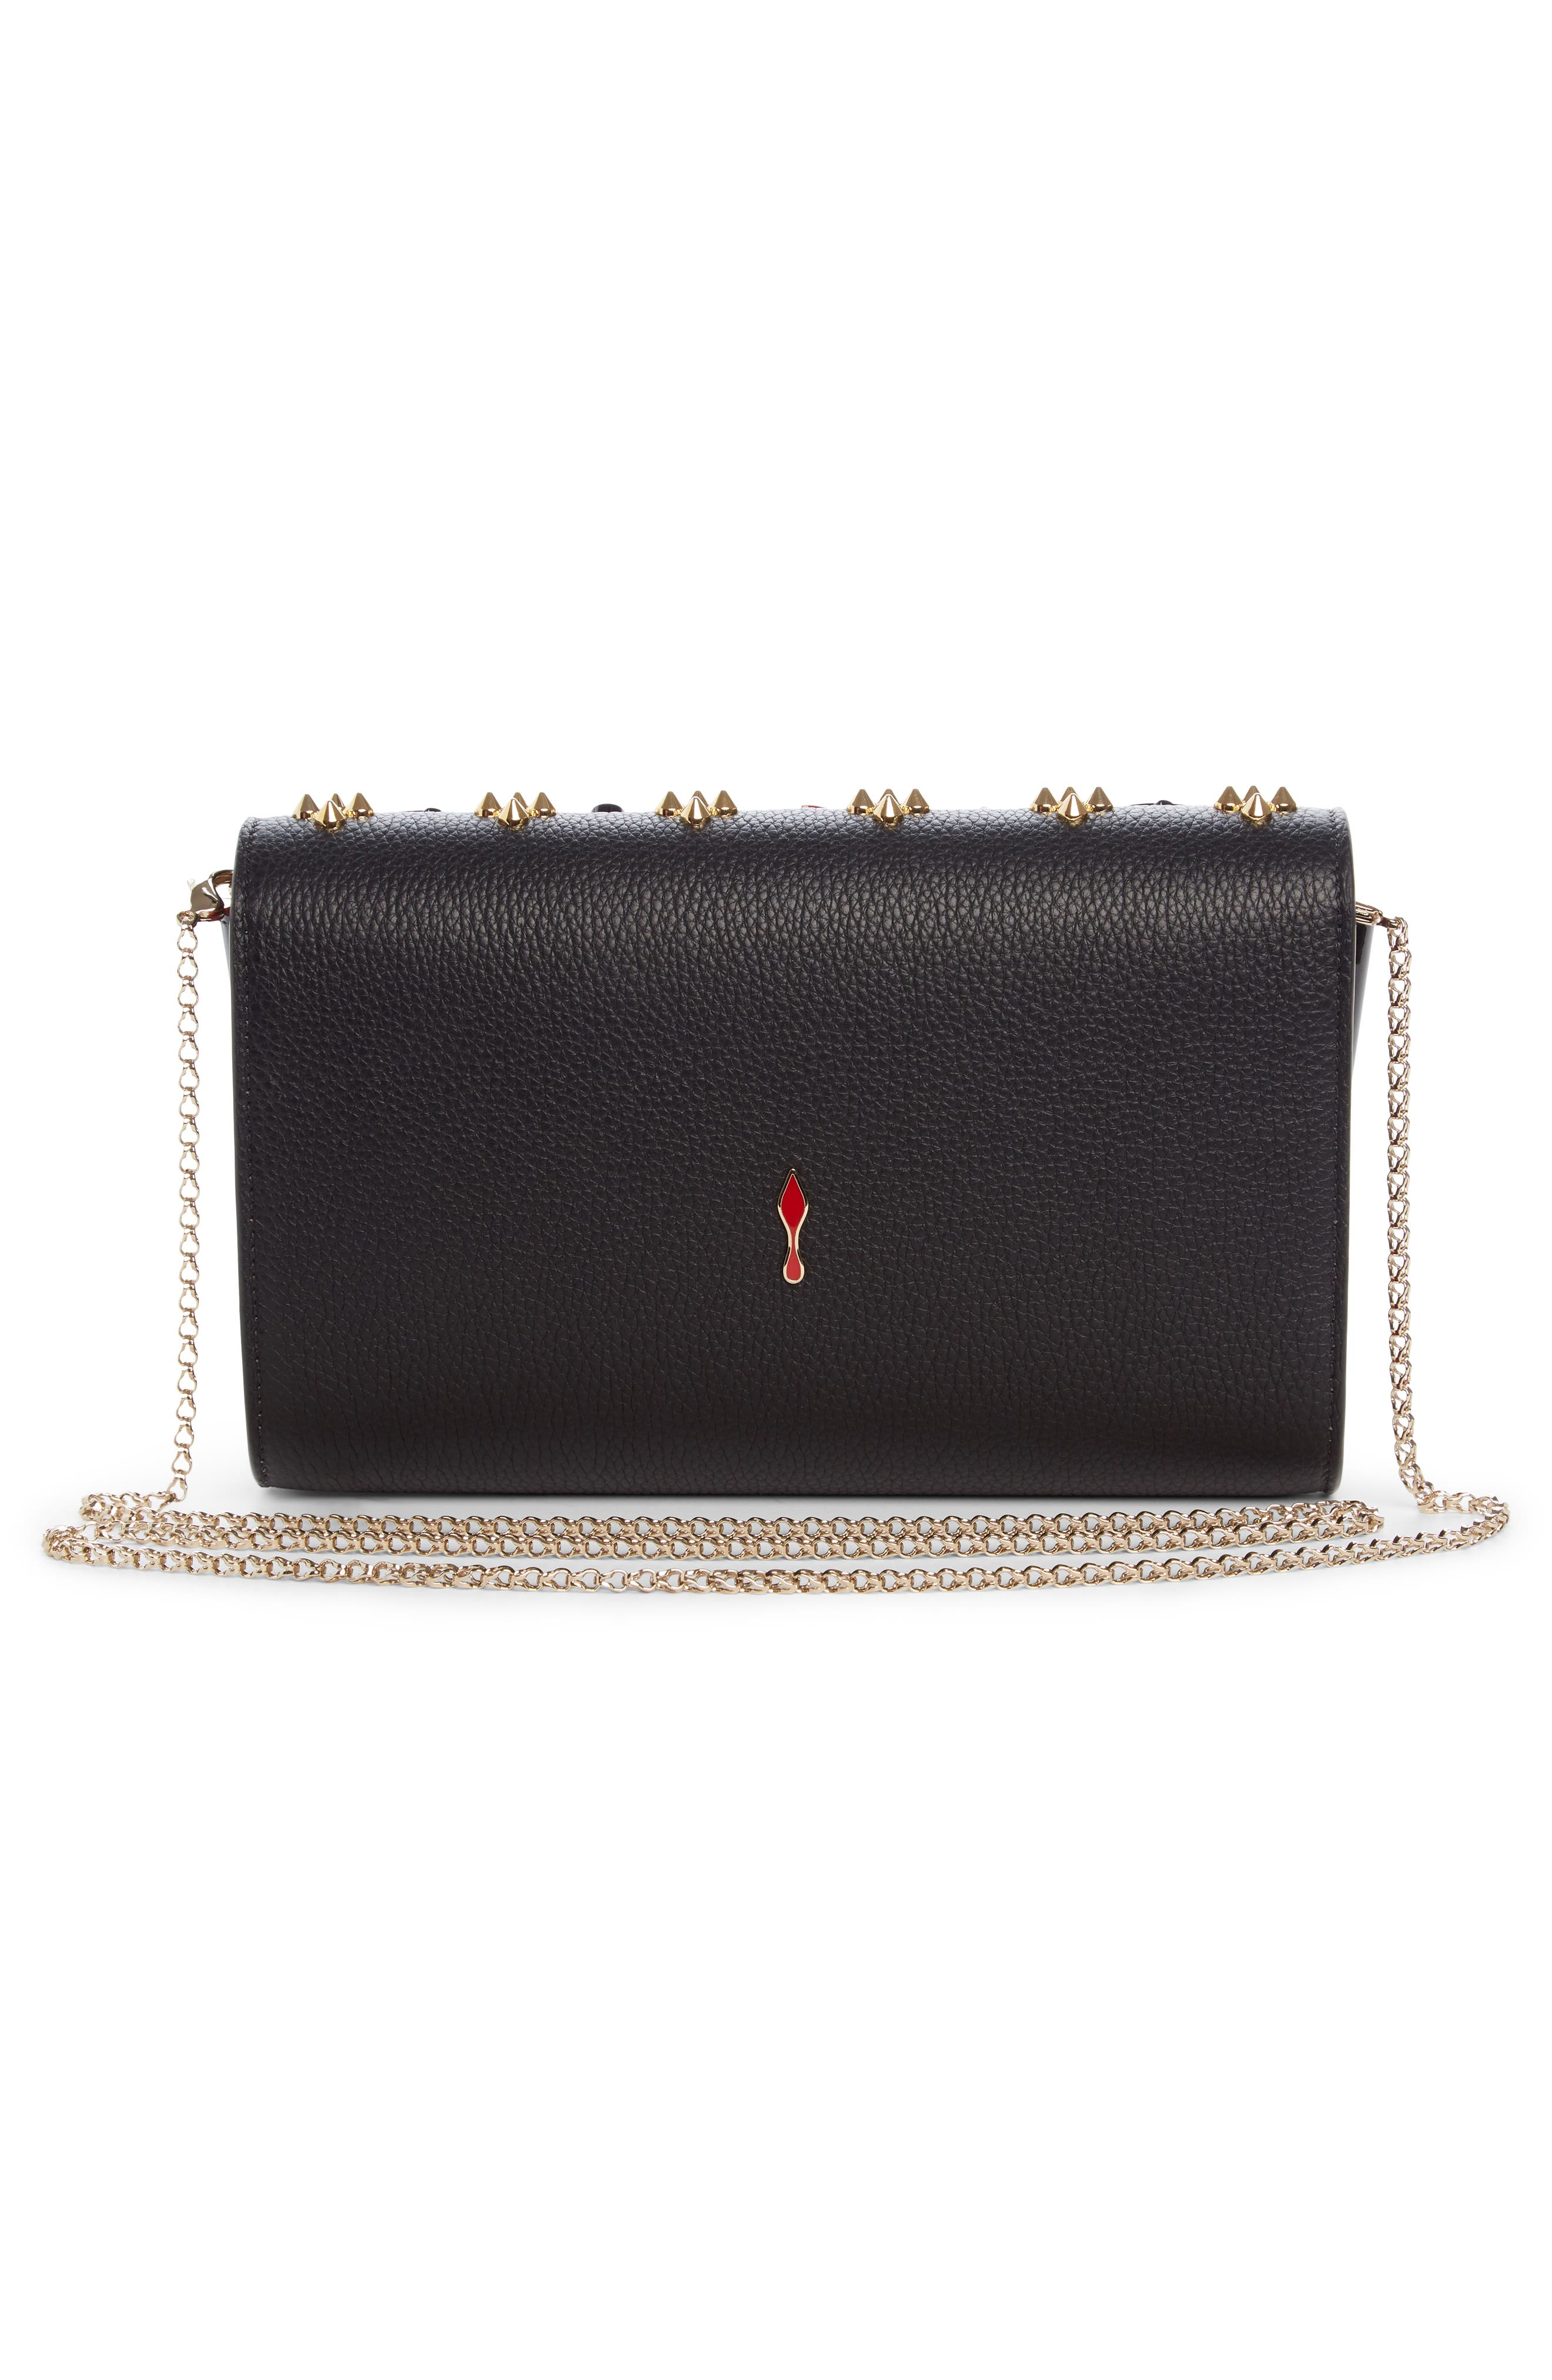 Paloma Empire Calfskin Clutch,                             Alternate thumbnail 2, color,                             Black/ Red-Gold